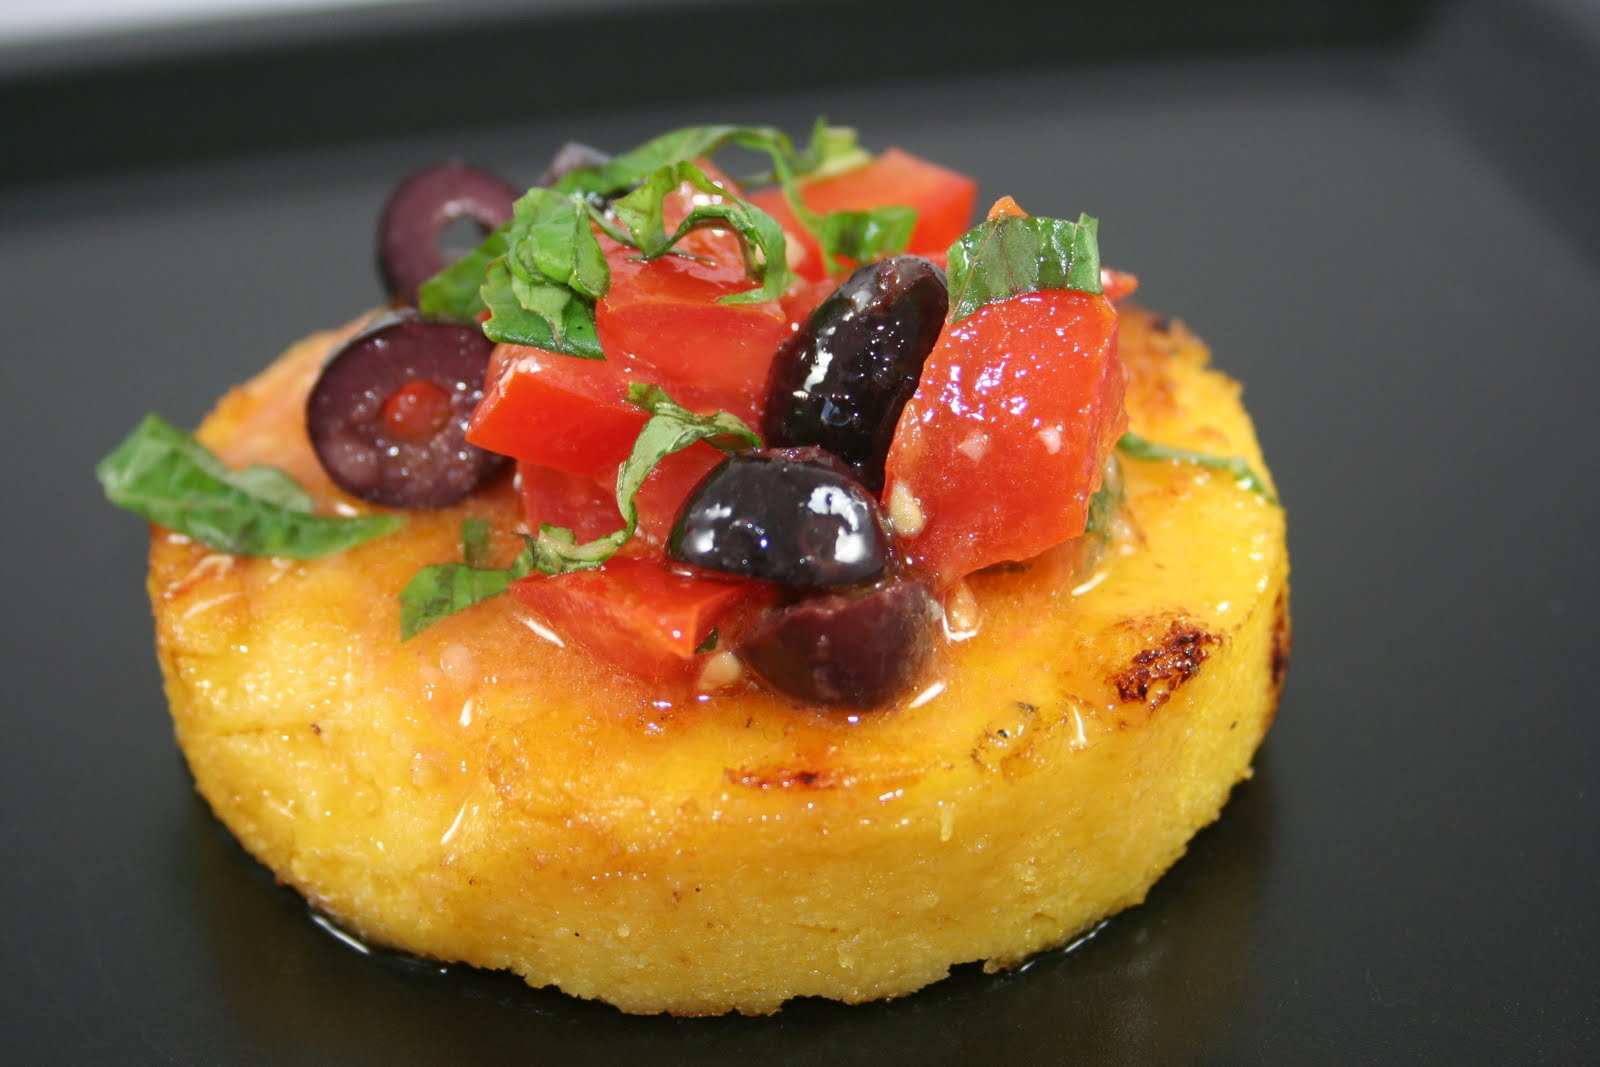 Crostini and Chianti: Grilled Polenta Cakes with Bruschetta Topping